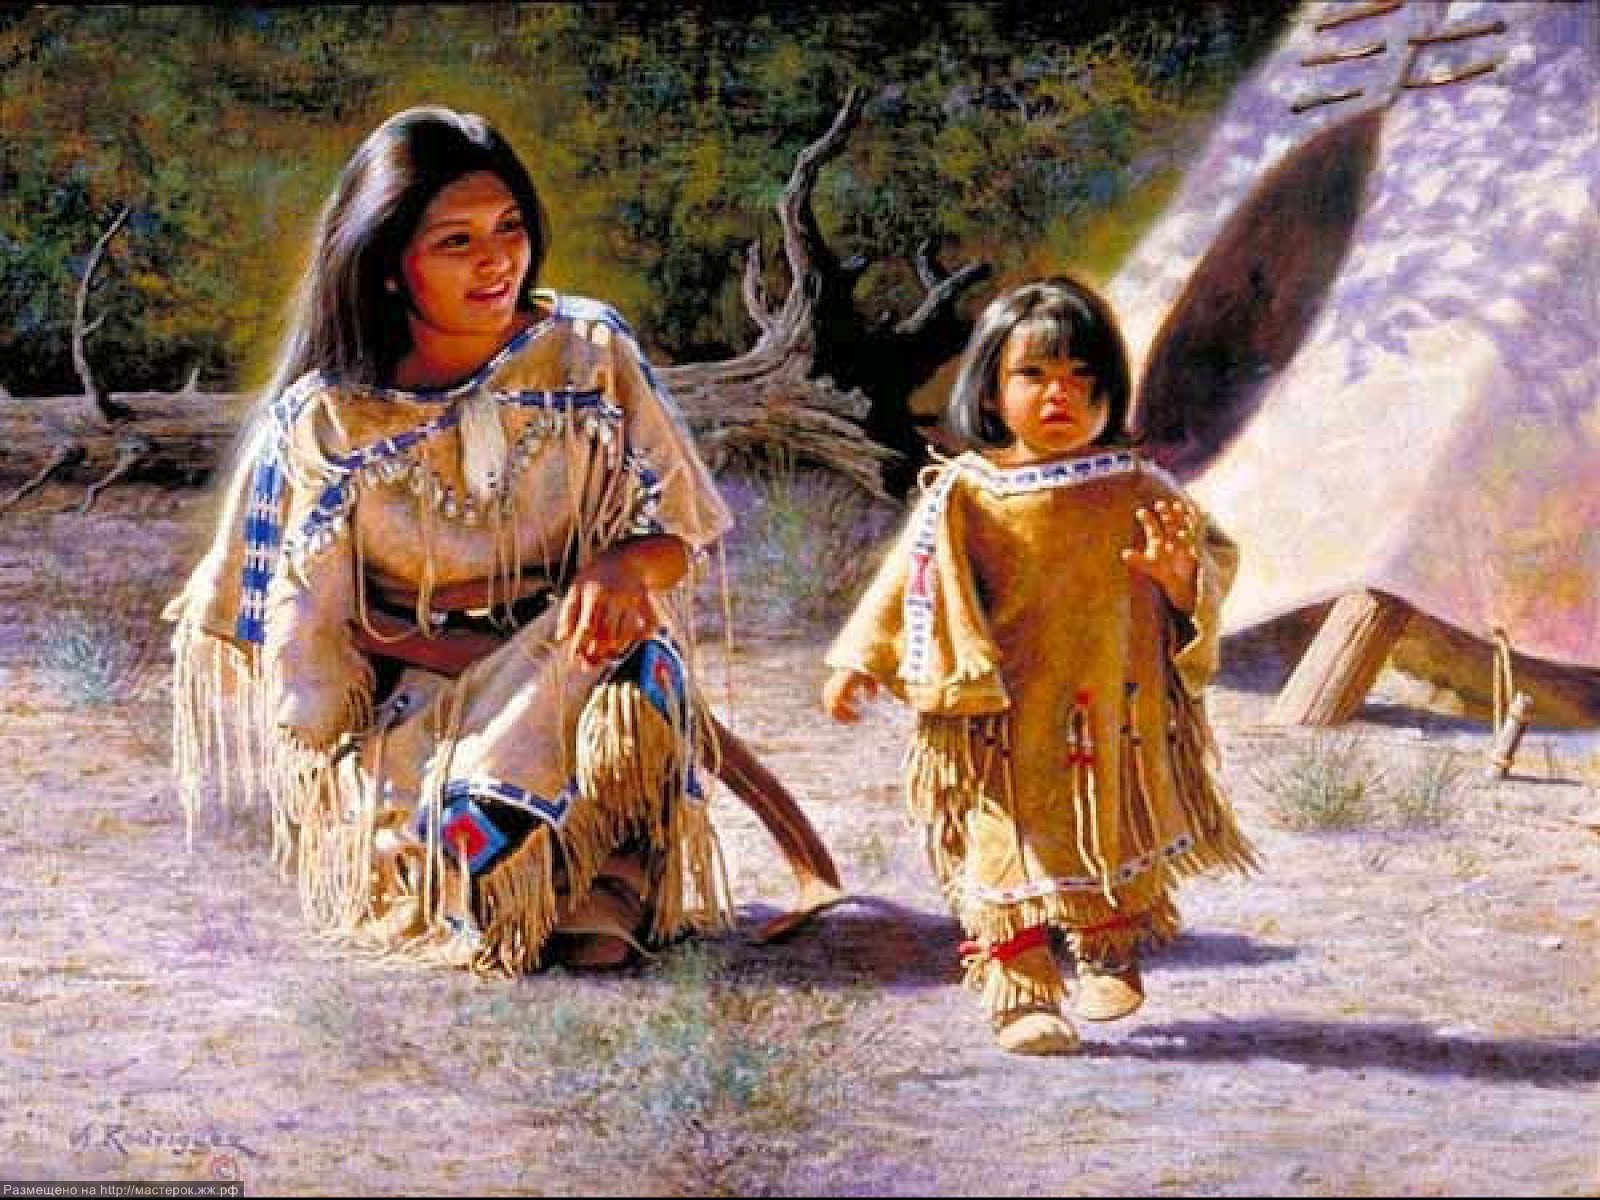 ceremony native americans in the united states essay In a peyote ceremony of the native american of what is now the united states and the american southwest as many native people found a.